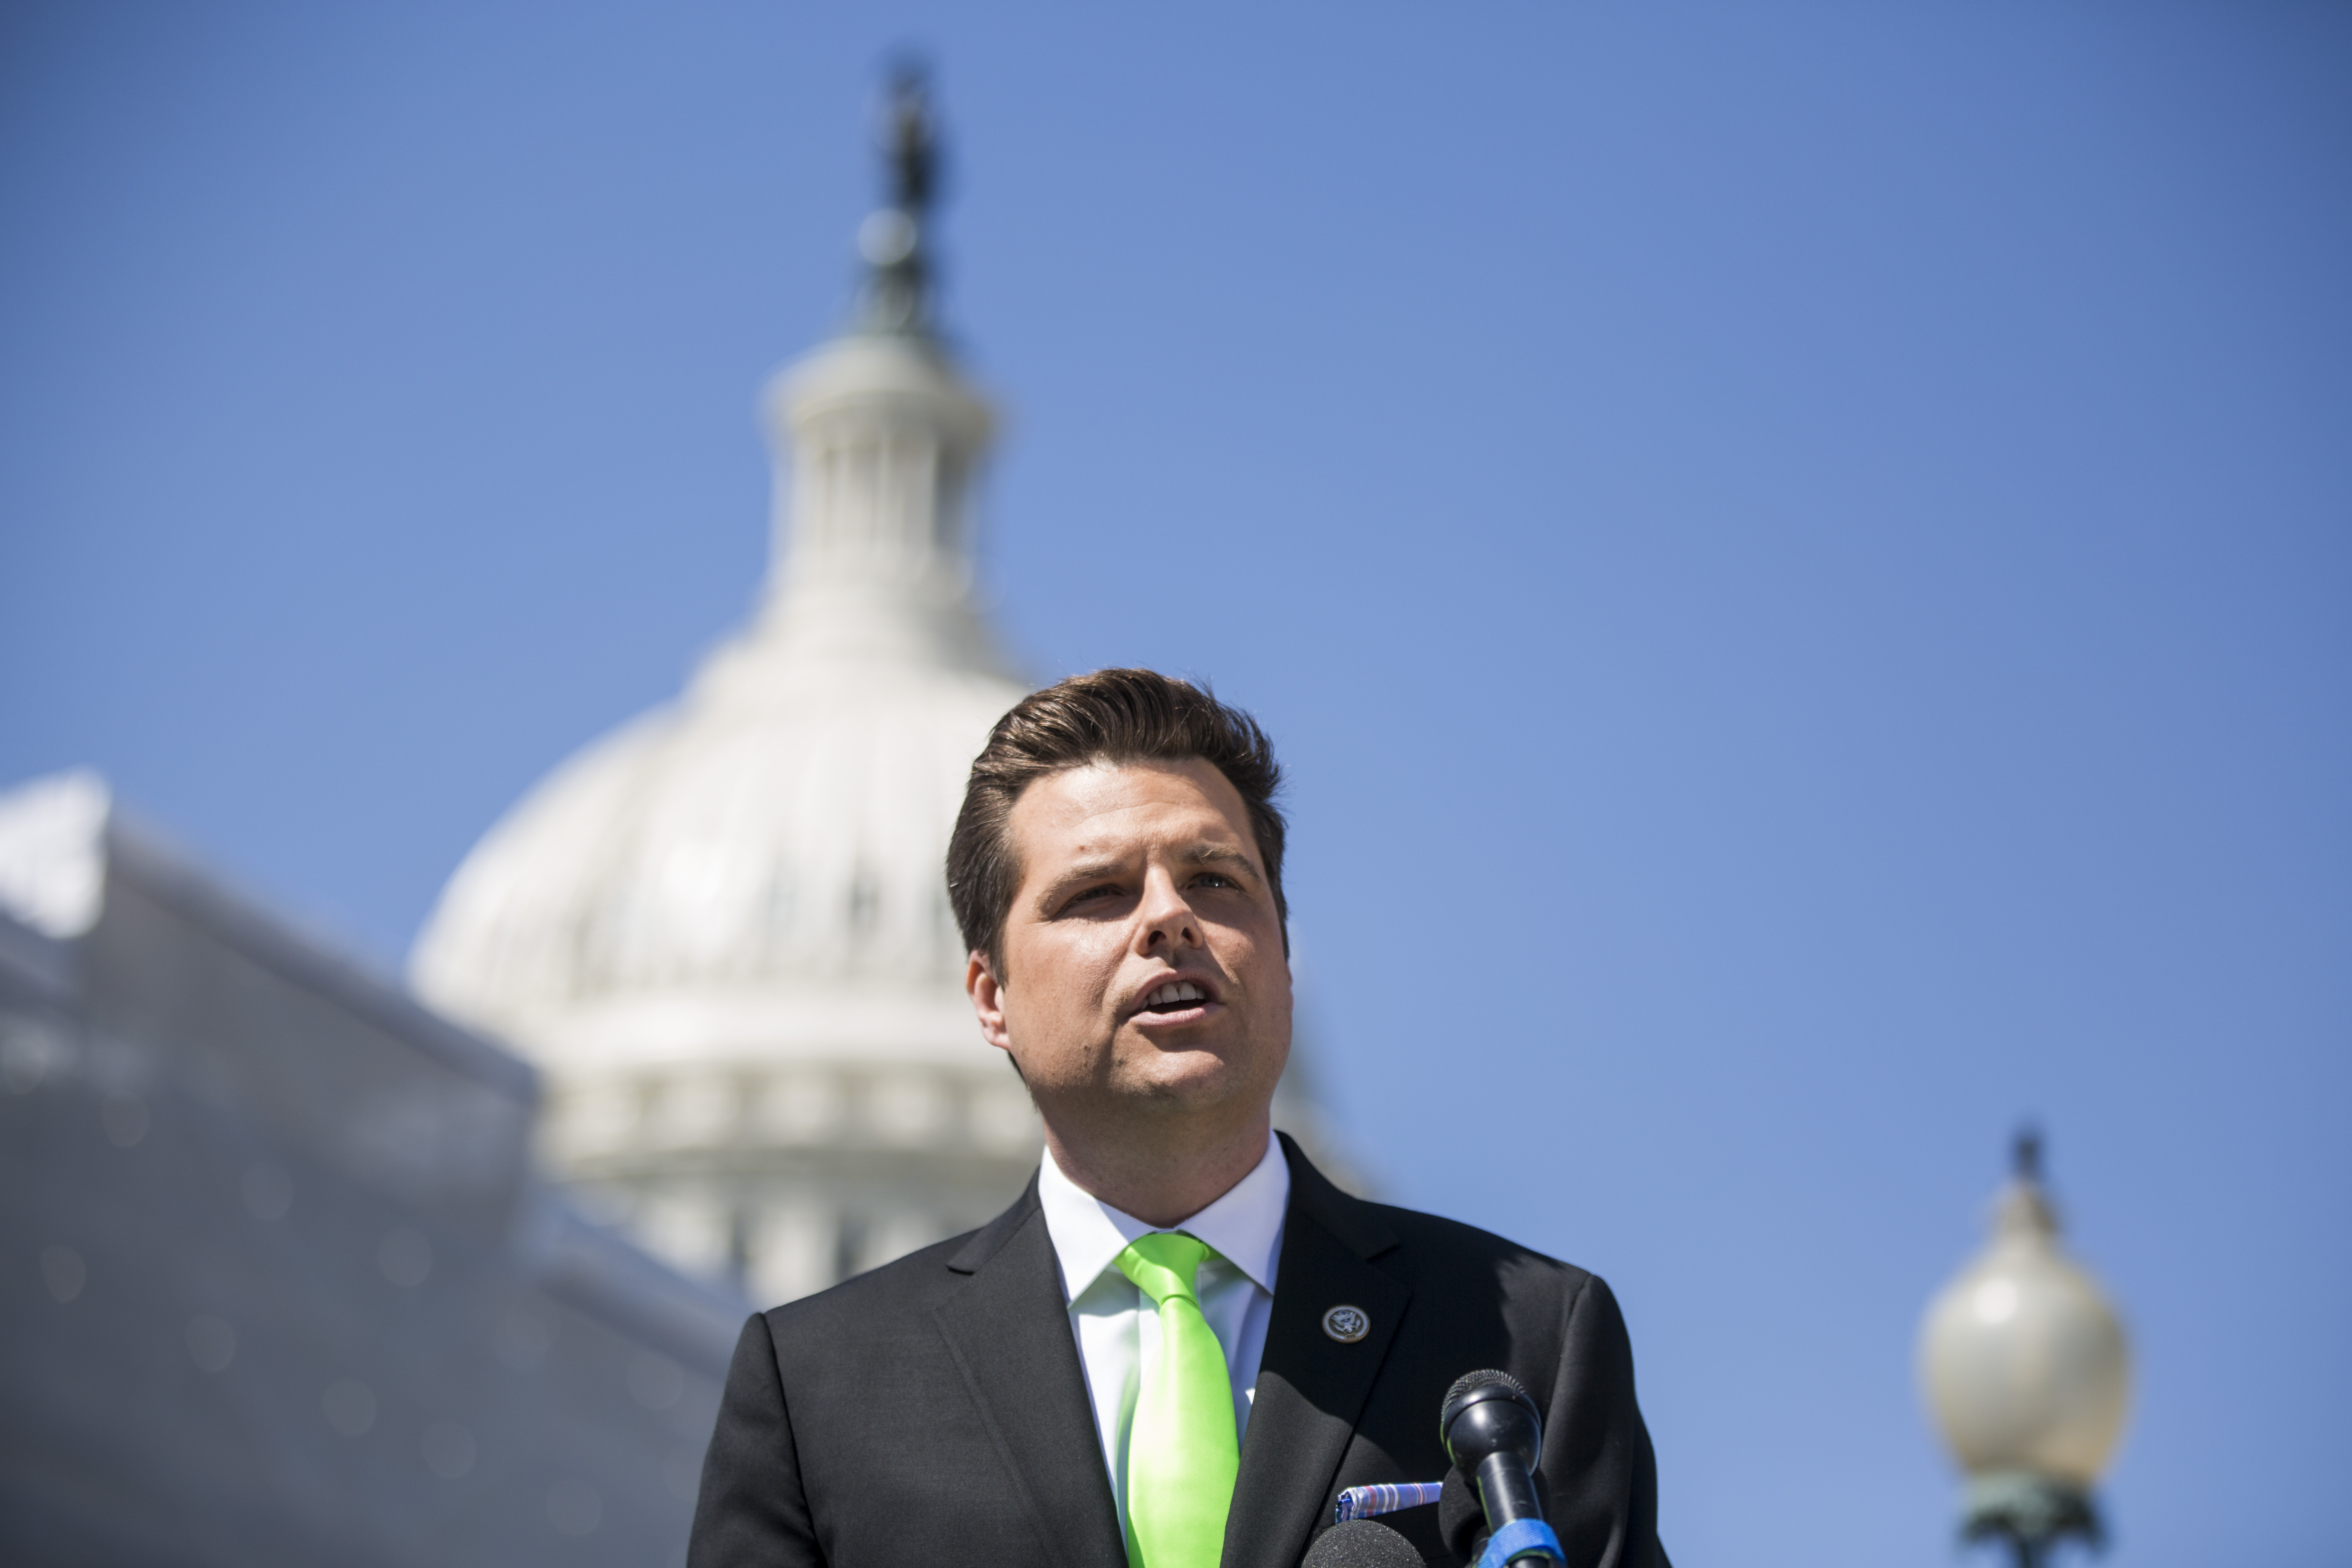 """Rep. Matt Gaetz speaks during a news conference to announce the """"Green Real Deal"""" on April 3, 2019 in Washington, DC. (Photo by Zach Gibson/Getty Images)"""